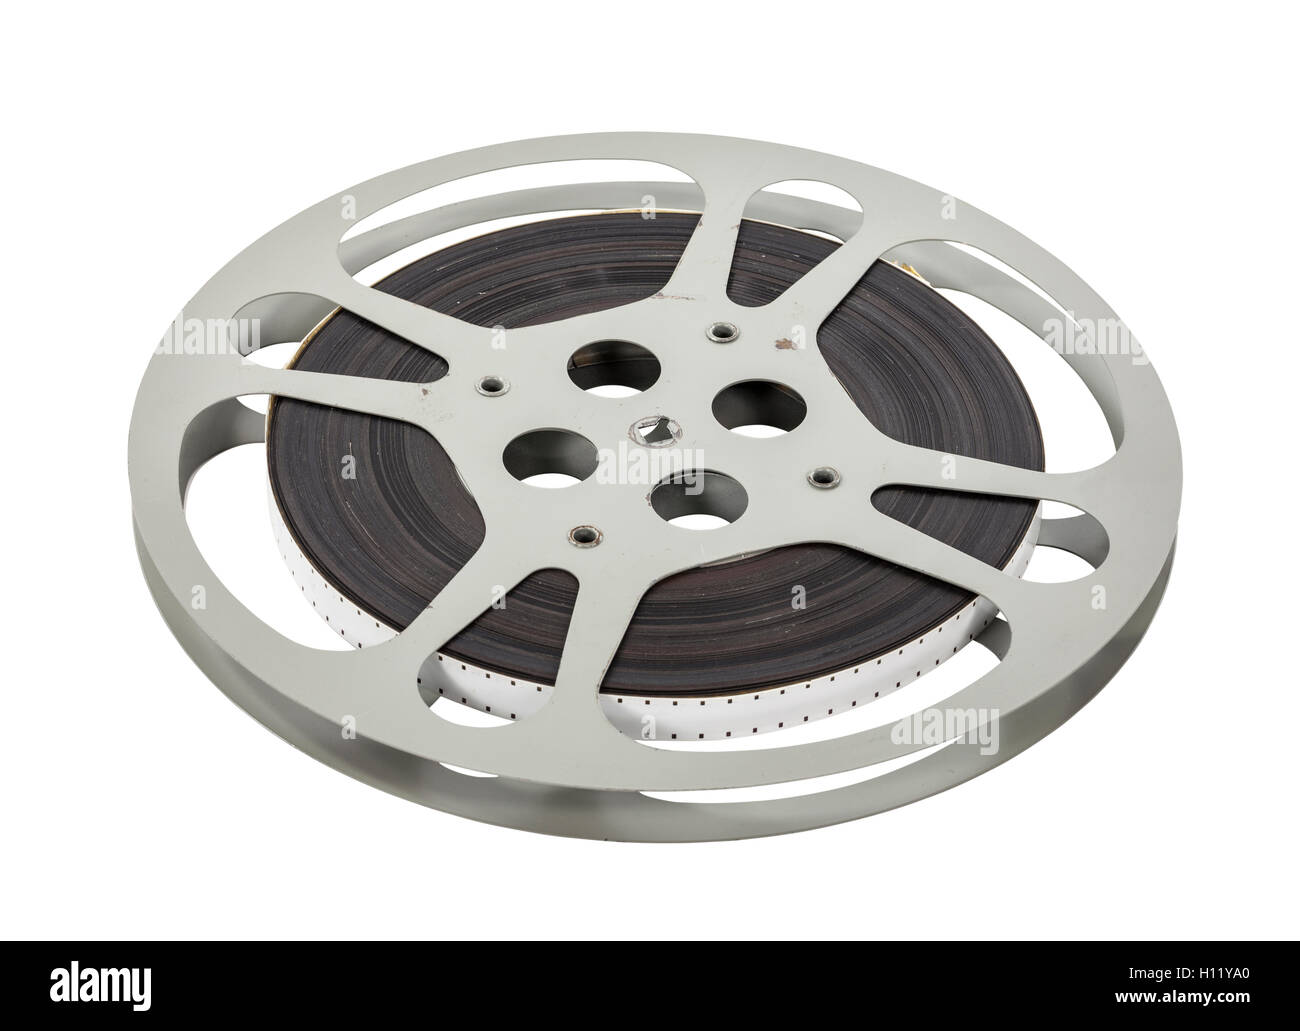 Vintage double sprocket 16mm film reel isolated on white. - Stock Image